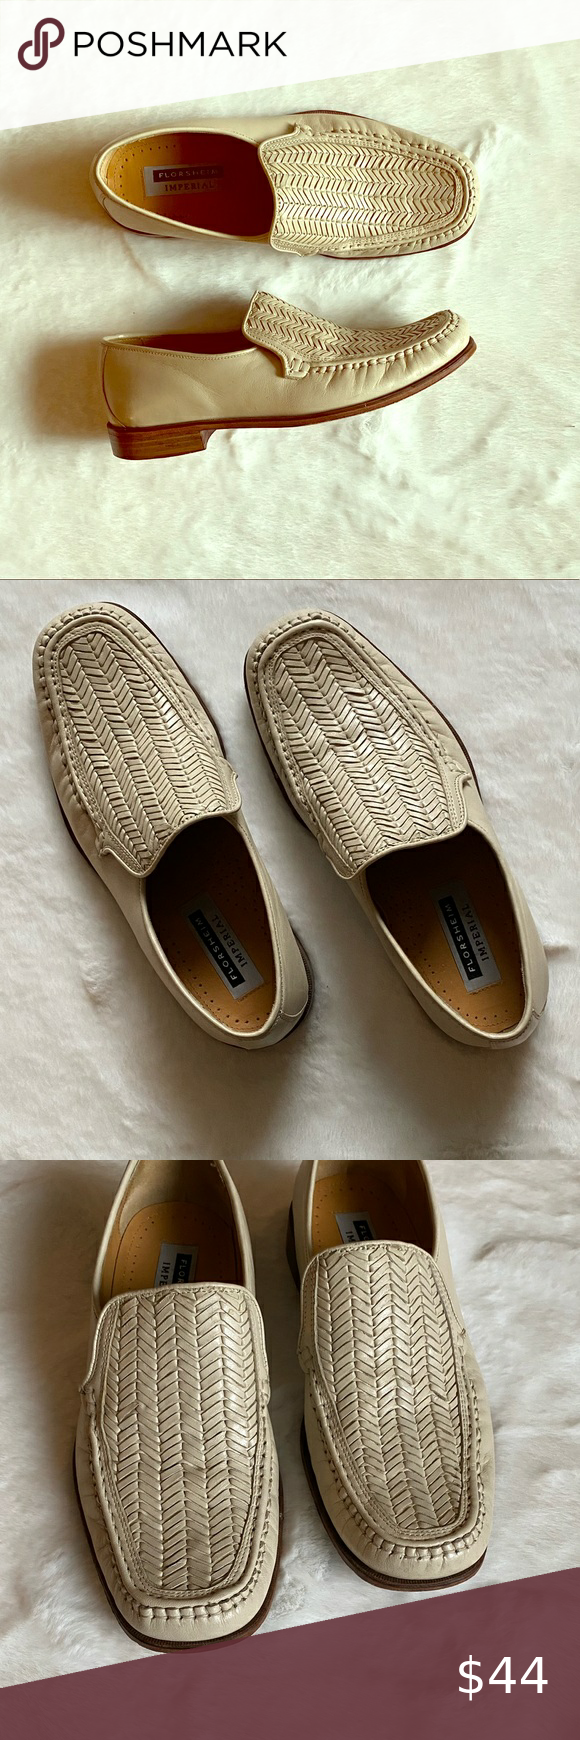 Florsheim Ivory Woven Leather Loafters In 2020 Florsheim Florsheim Shoes Nice Shoes